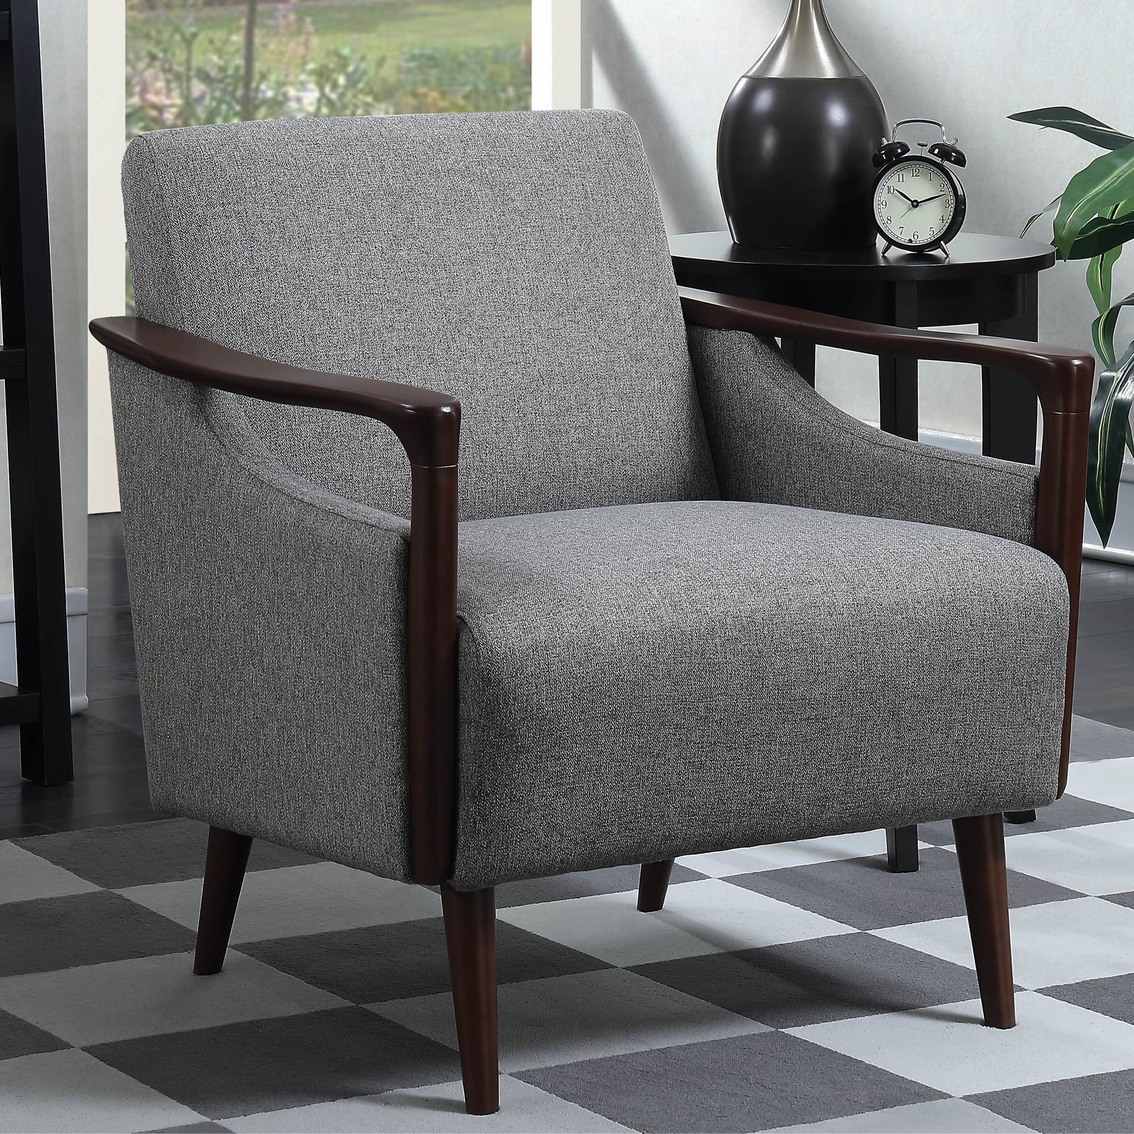 2343d1c8417e Scott Living Mid Century Modern Accent Chair